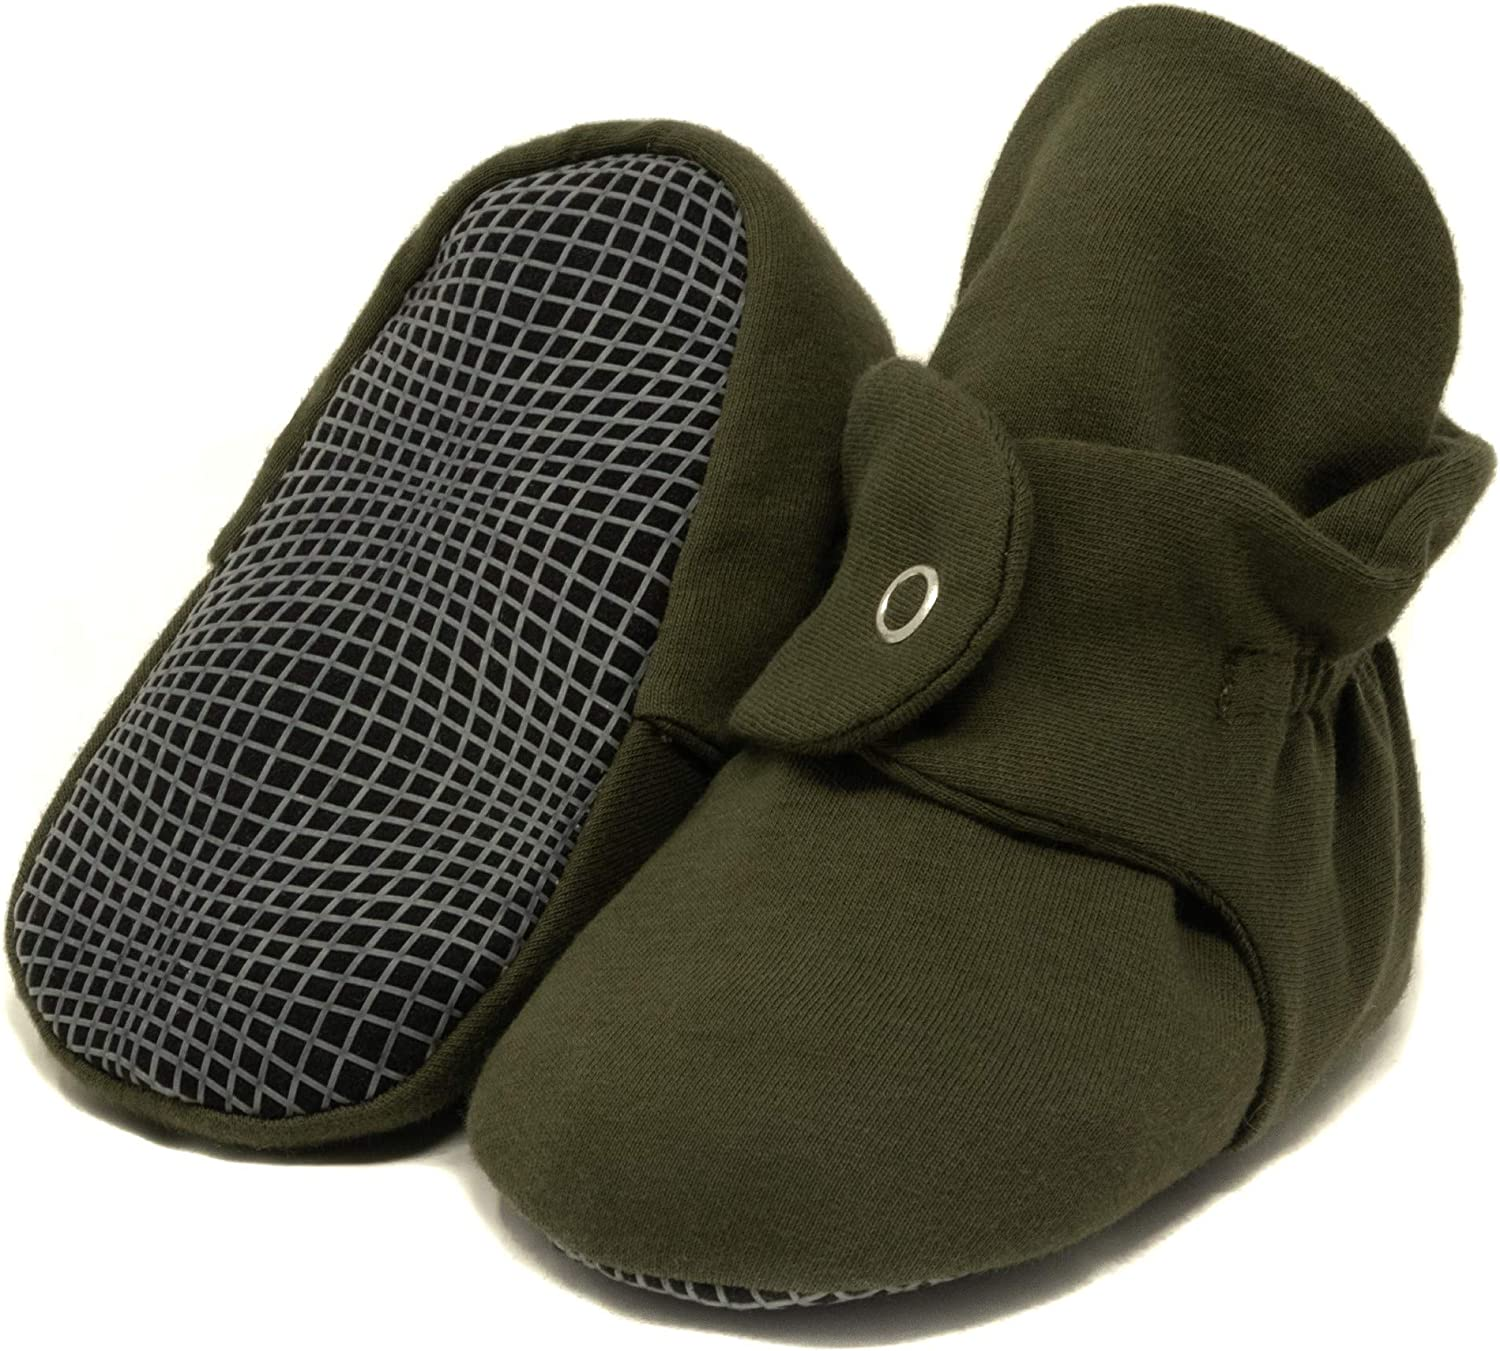 Organic Cotton Baby Booties, Non Skid, Soft Sole, Stay On Baby Shoes, House Slippers for Baby Boys Girls Toddlers